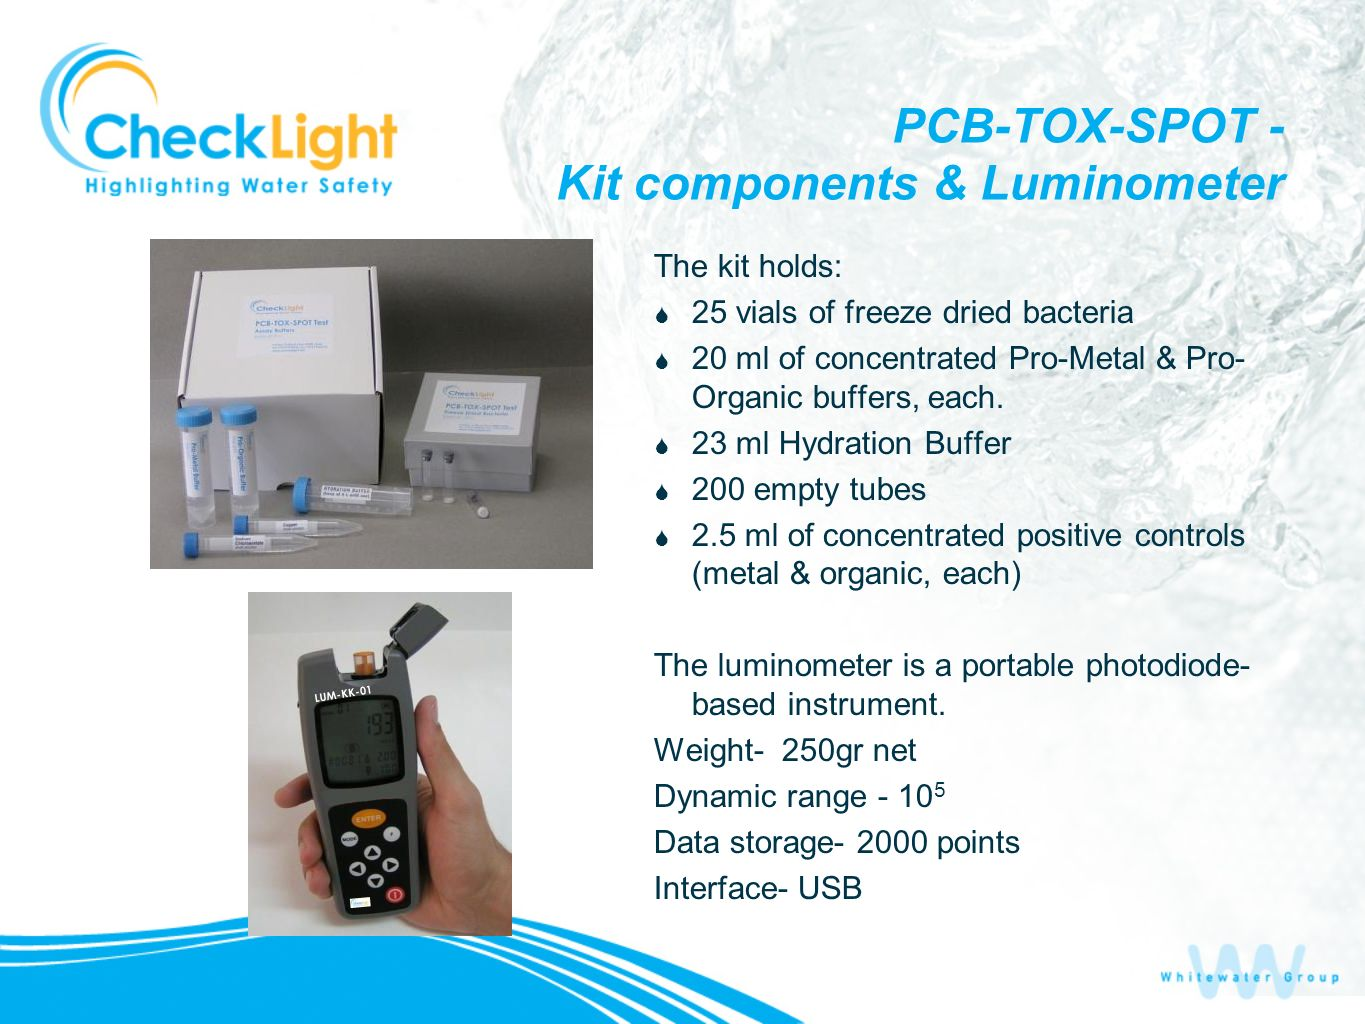 PCB-TOX-SPOT - Kit components & Luminometer